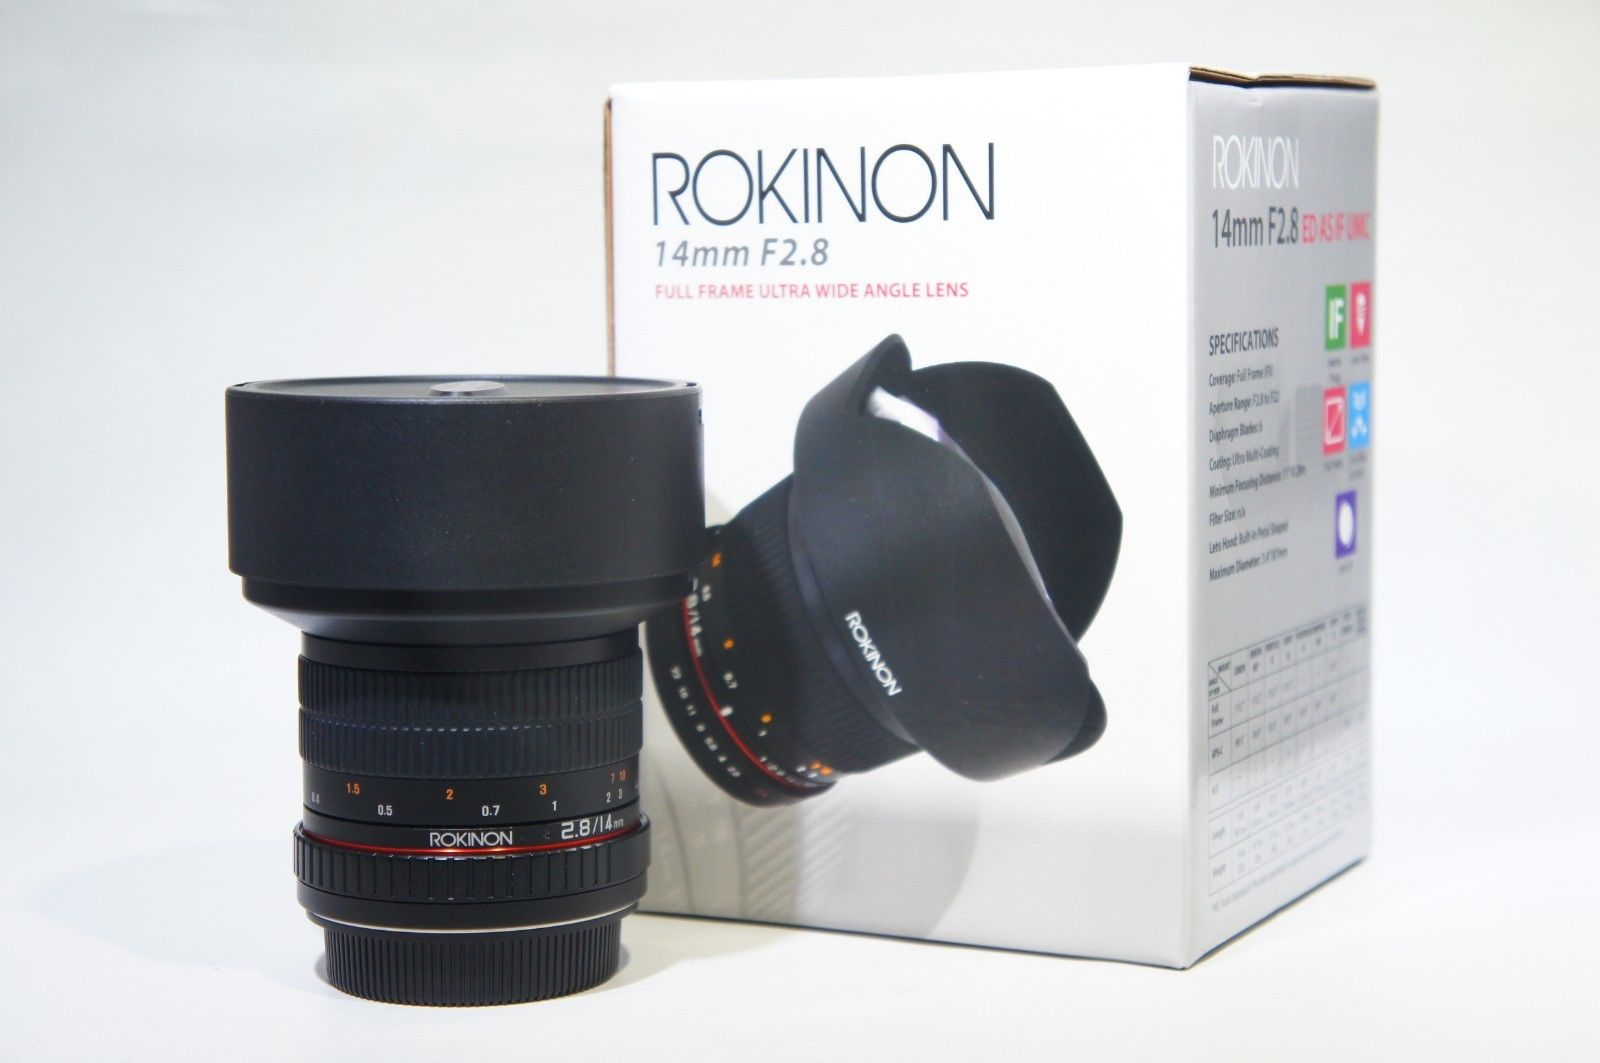 Rokinon FE14M-C 14mm F2.8 Super Wide Angle Lens for Canon EOS Digital SLR